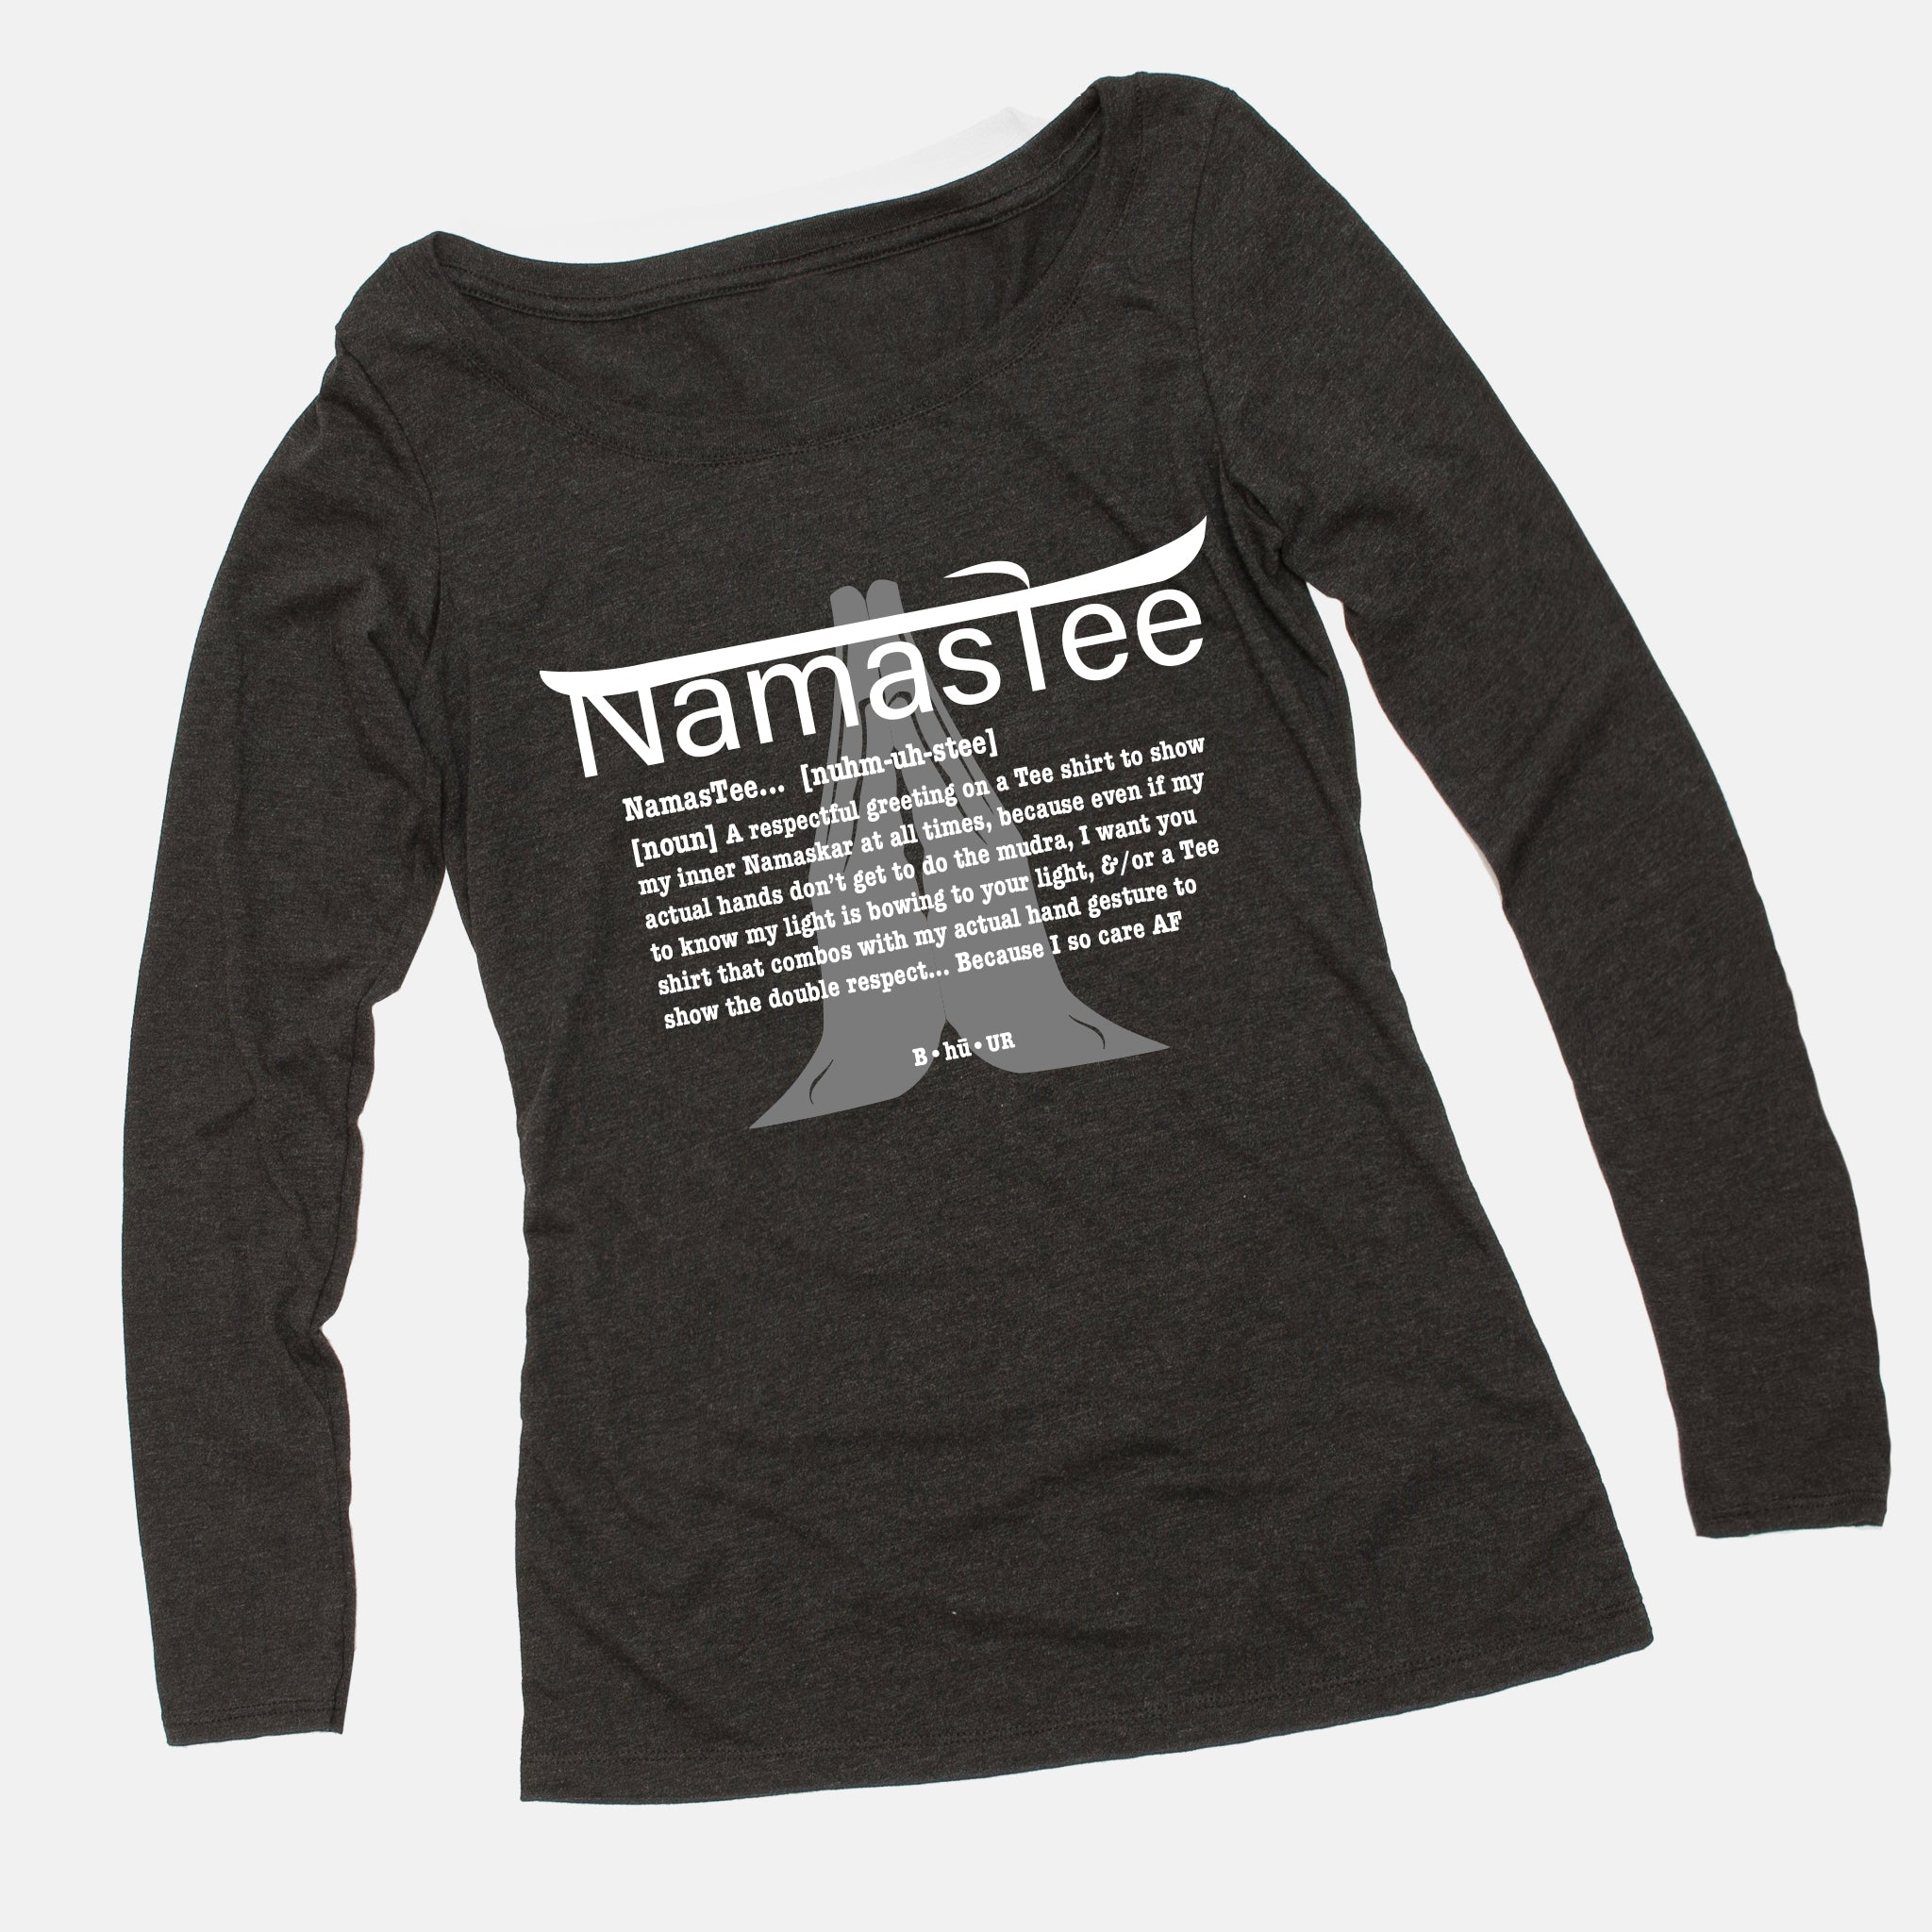 Namastee shirt : Women's Long Sleeve Scoop Tee (Charcoal)